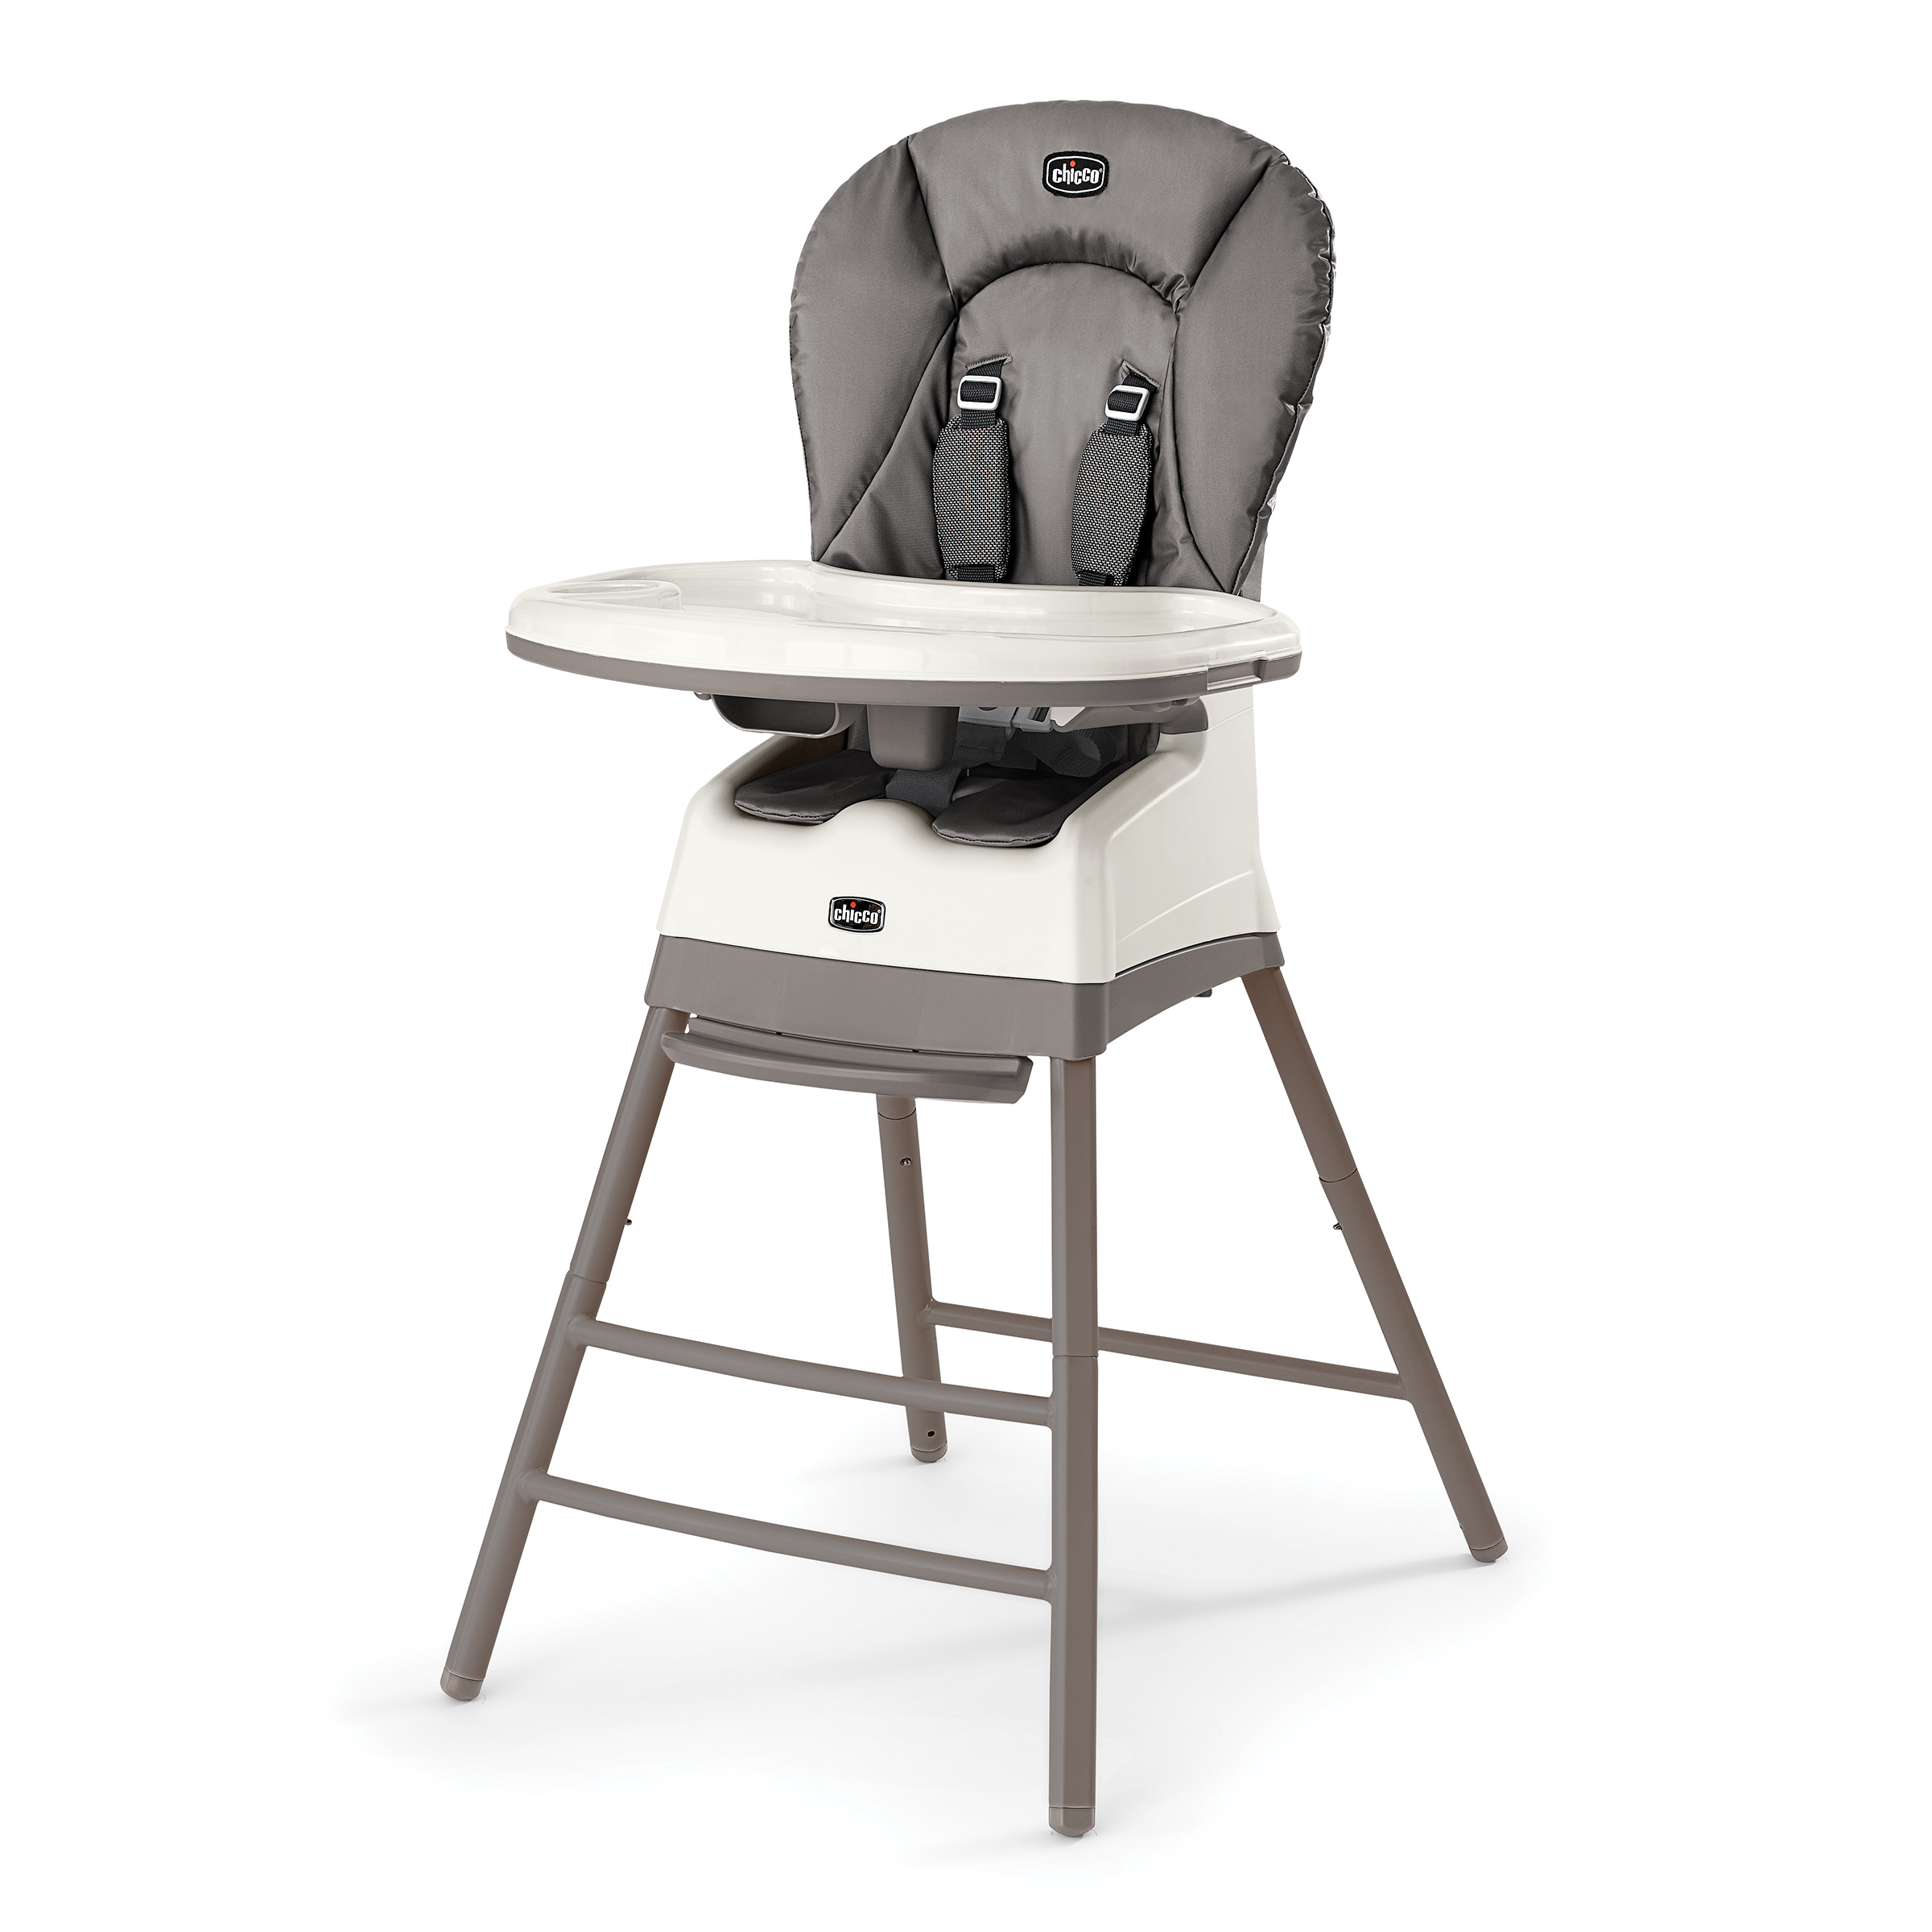 Chicco Stack 3 In 1 High Chair, Dune